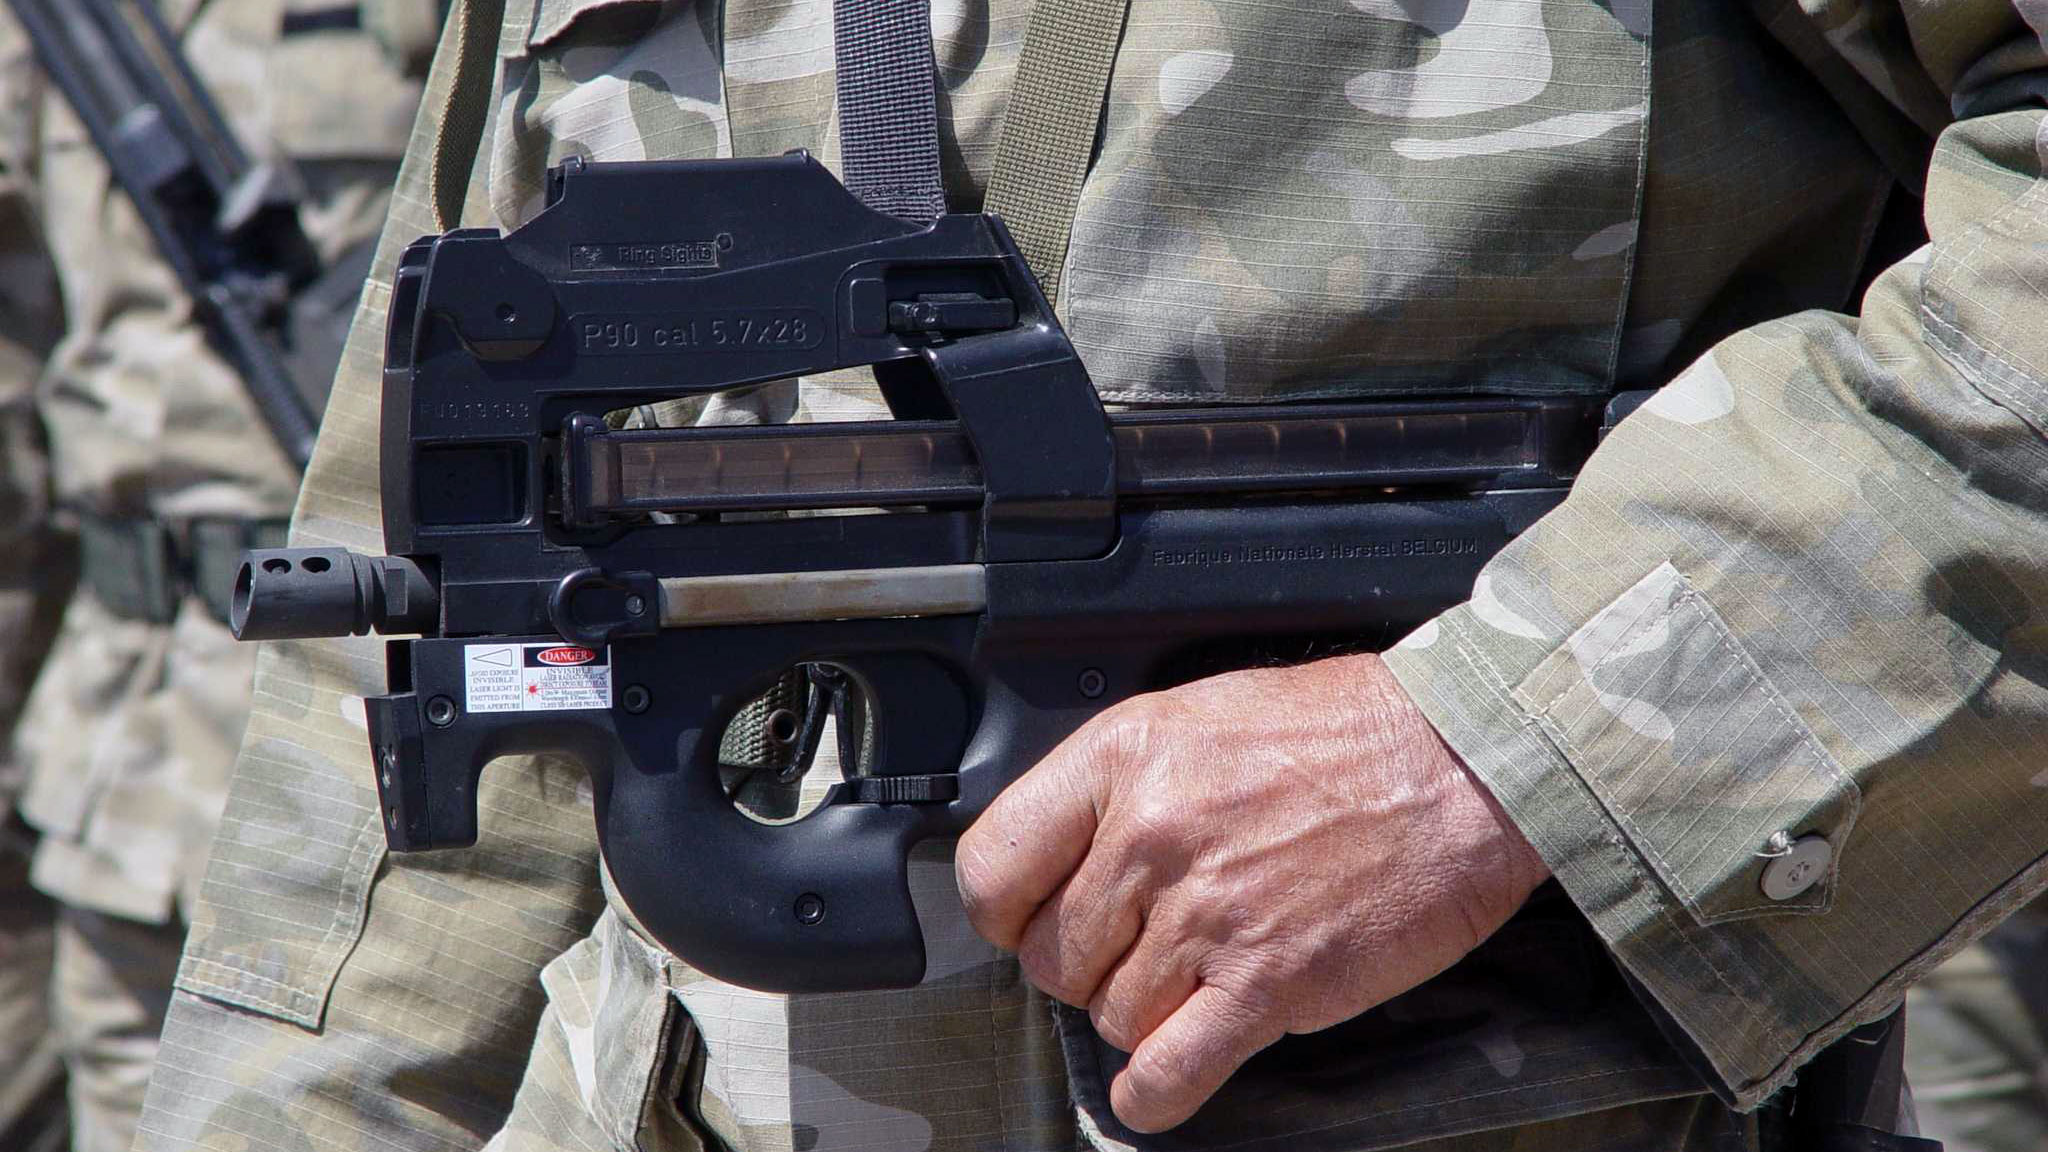 the fn p90 being carried by a member of the cypriot national guard